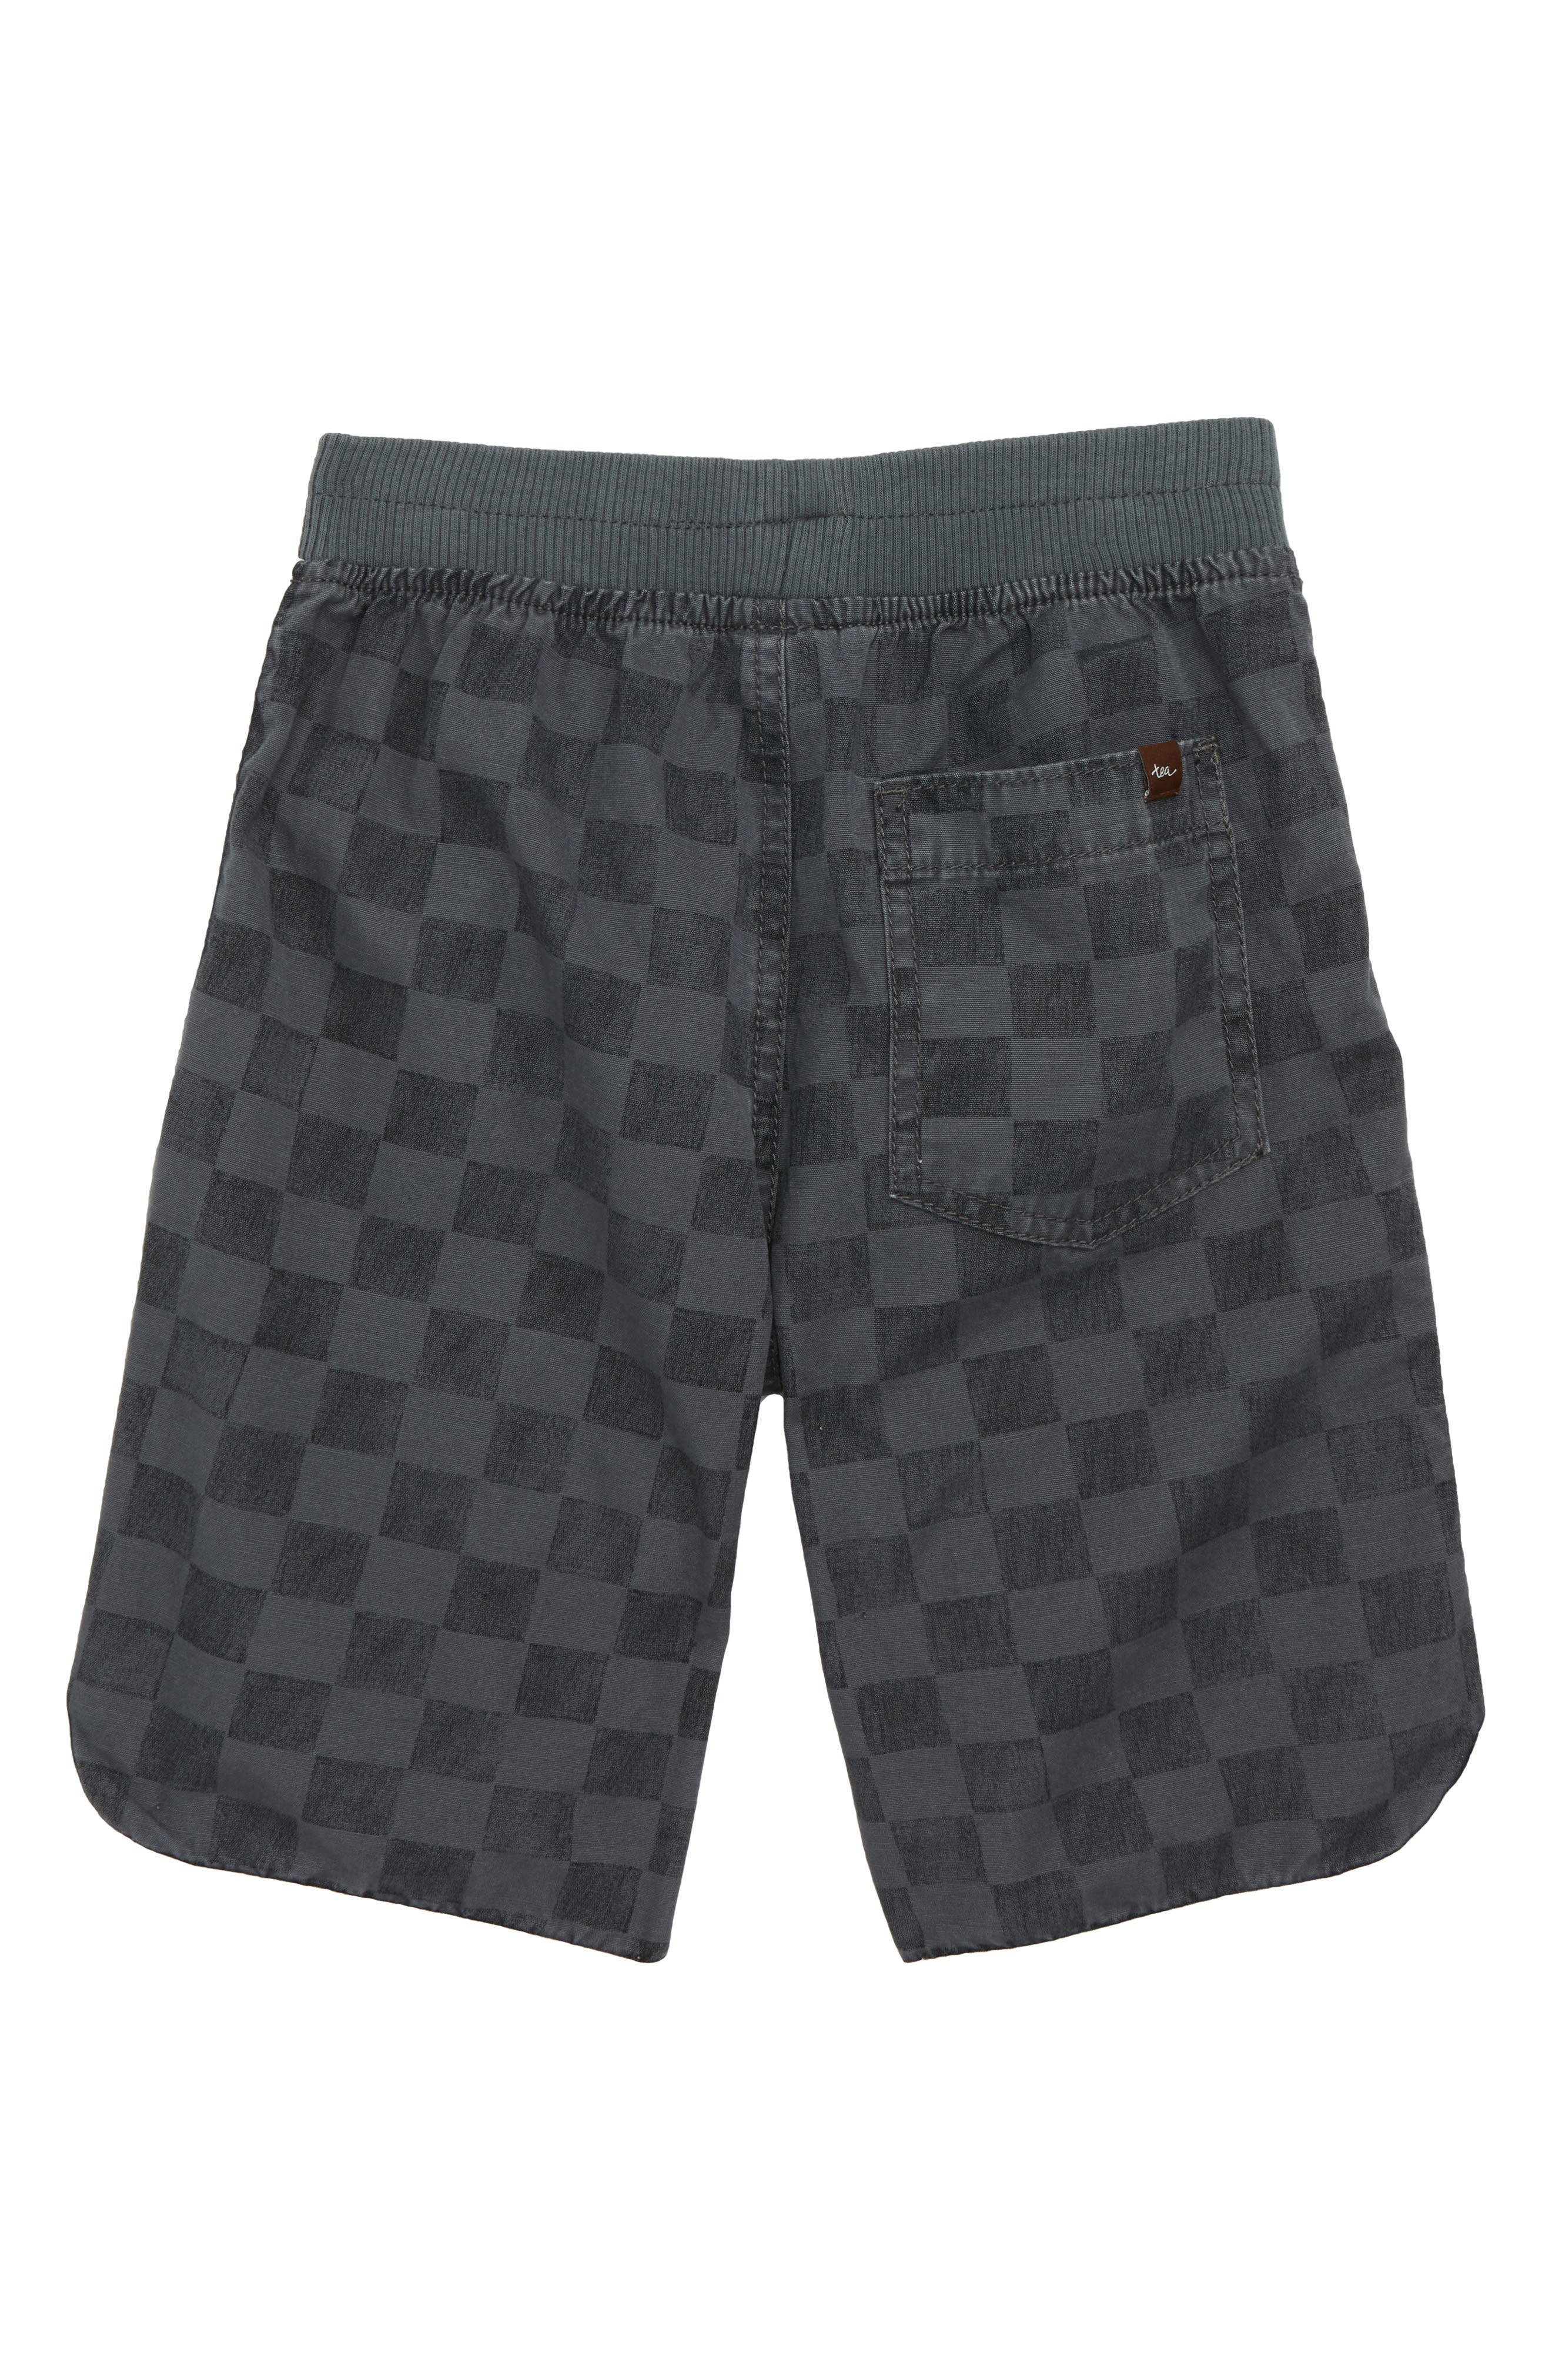 Piped Shorts,                             Alternate thumbnail 2, color,                             023